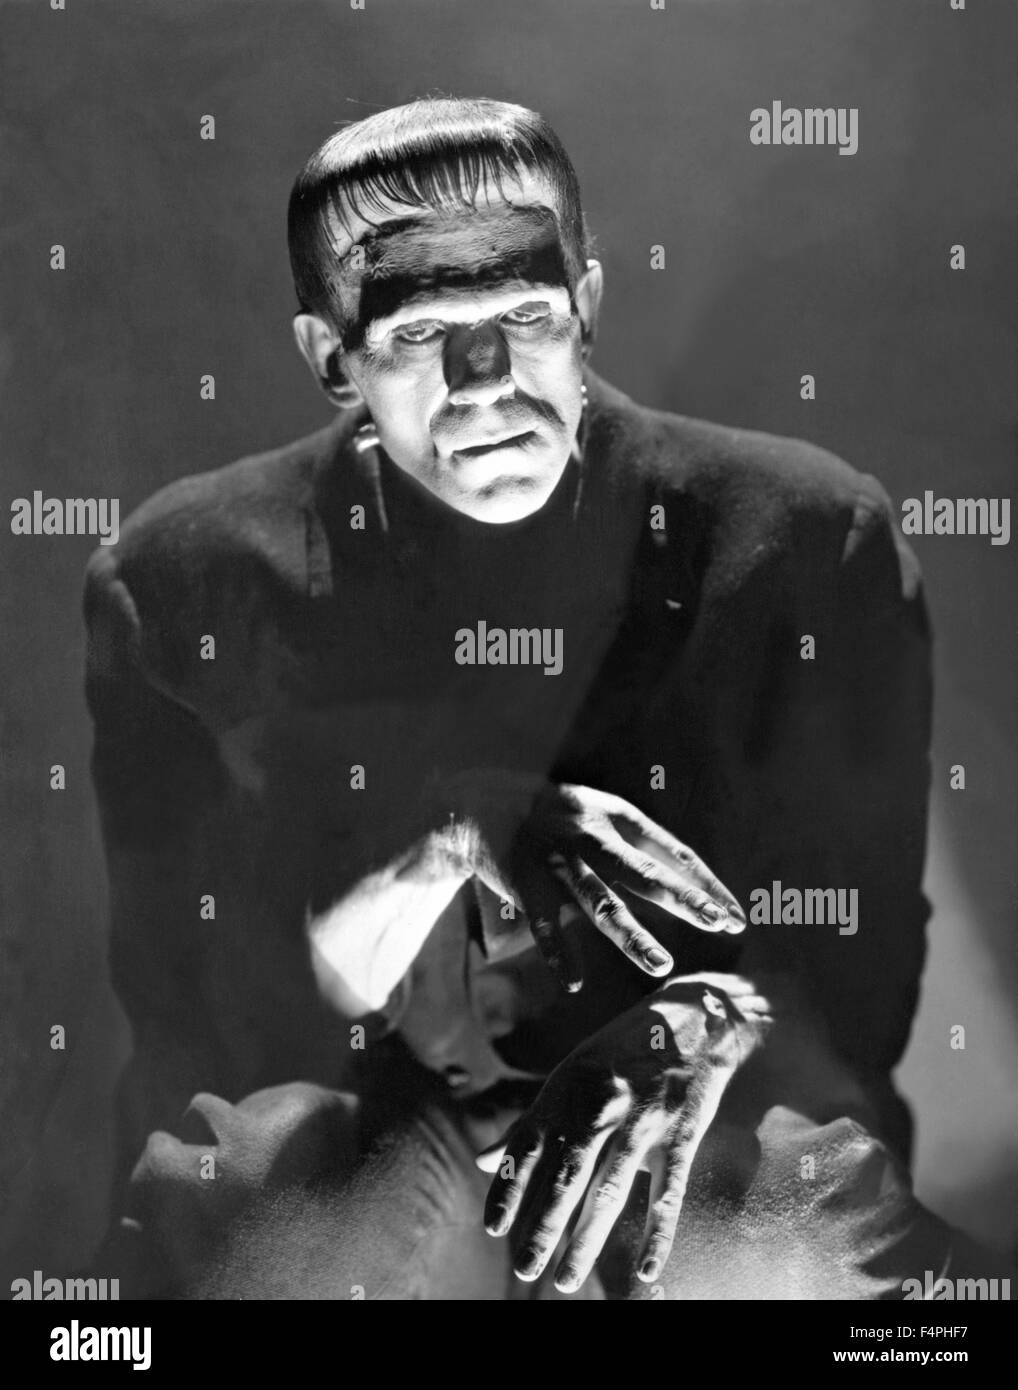 Boris Karloff / Frankenstein / 1931 directed by James Whale [Universal Pictures] - Stock Image